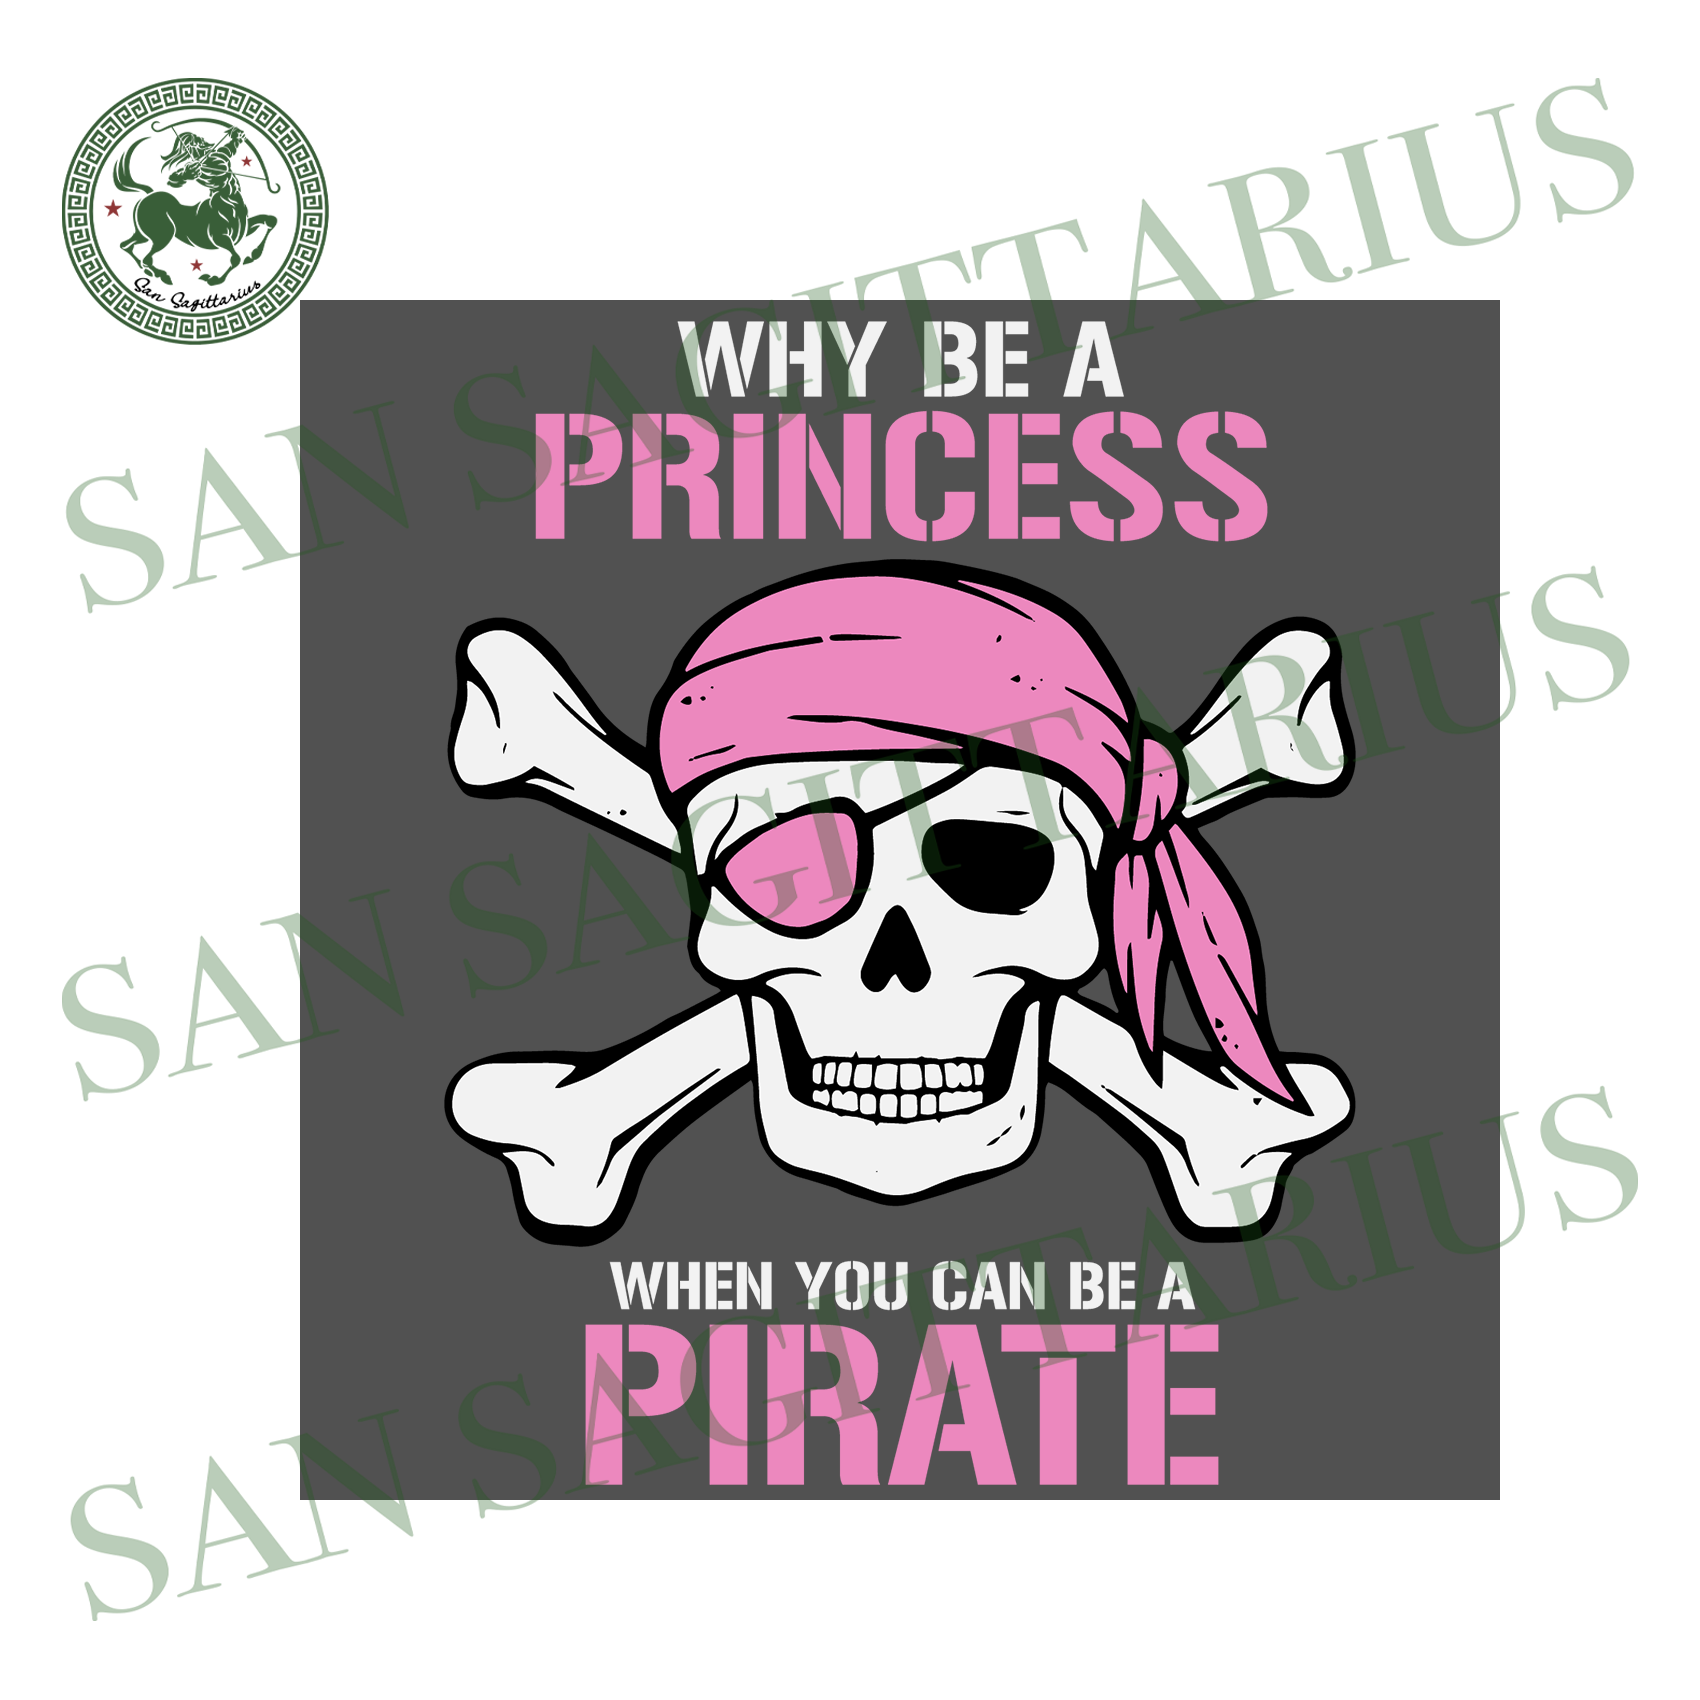 Why Be A Princess When You Can Be A Pirate svg, Pirate Costume TShirt,Pirate Costume svg,Pirate Girl svg, Feminist T-Shirt svg, Princess T Shirt, Pirate Halloween svg,Pirate Halloween shirt